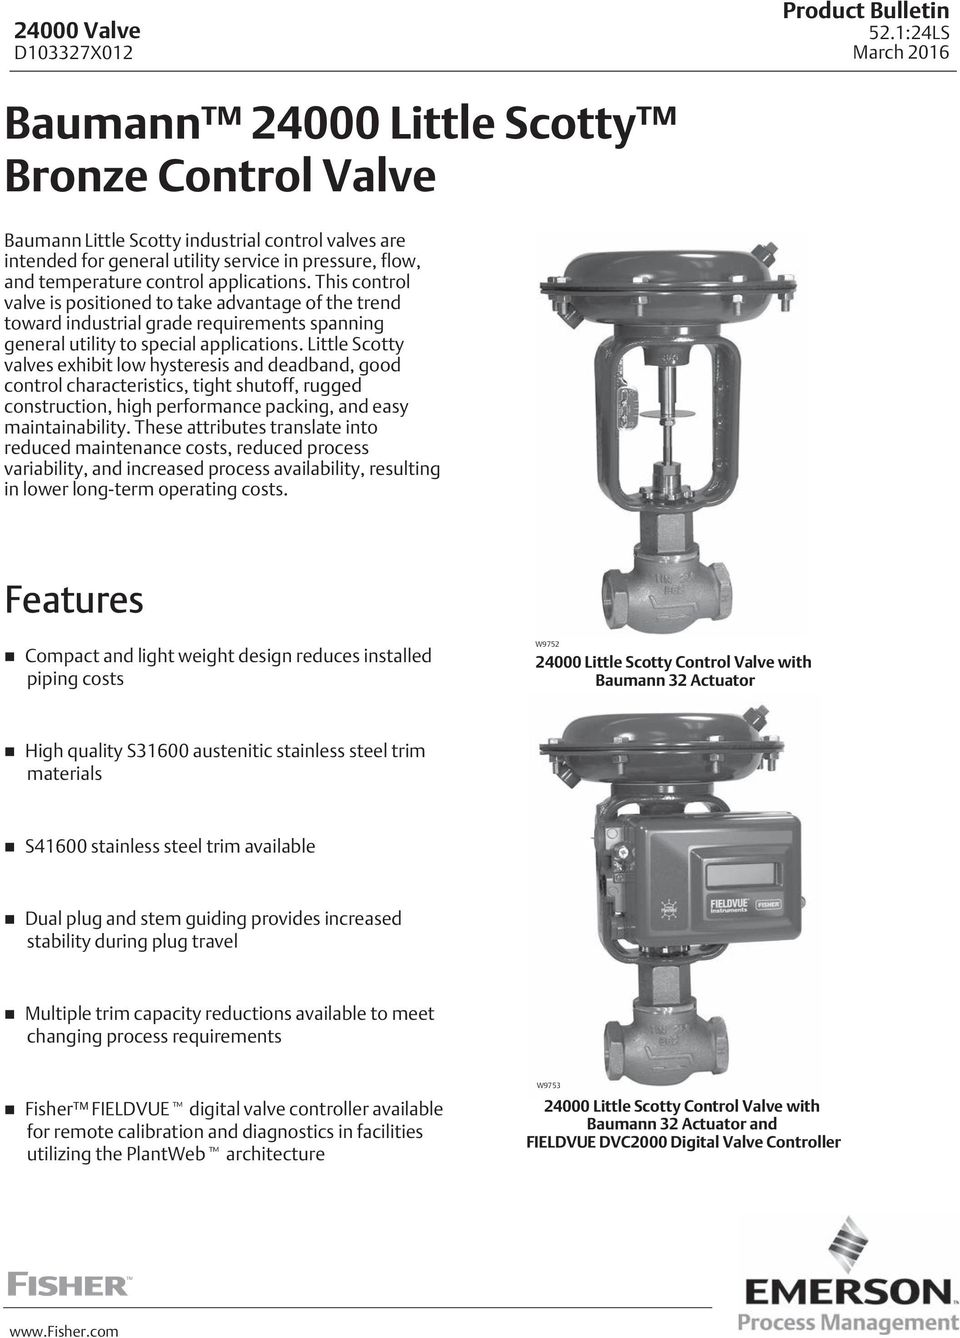 Little Scotty valves exhibit low hysteresis and deadband, good control characteristics, tight shutoff, rugged construction, high performance packing, and easy maintainability.